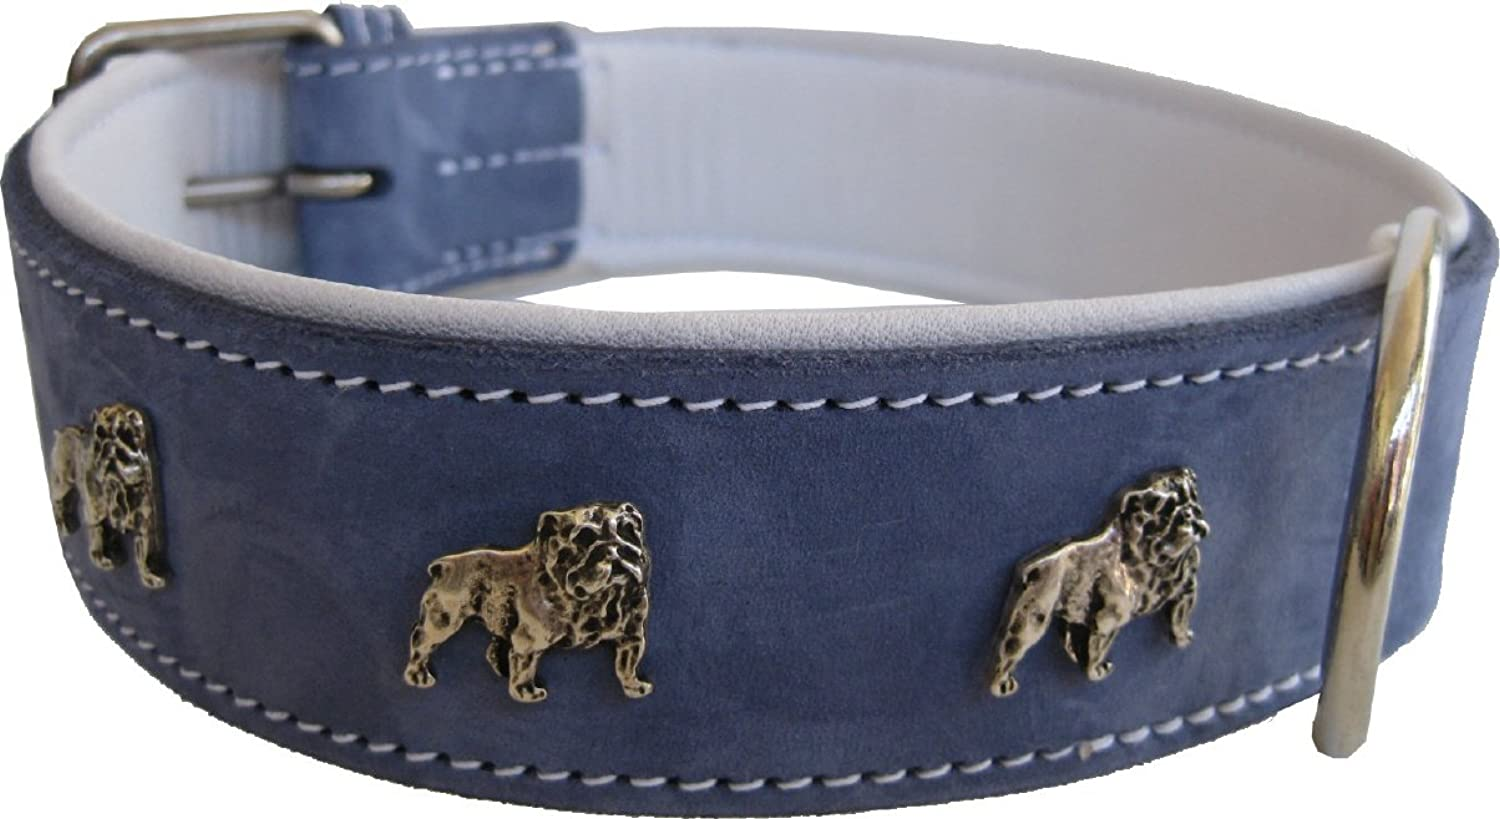 Robust Leather Collar with English Bulldogs in Different Sizes  Black, Brown or Denim